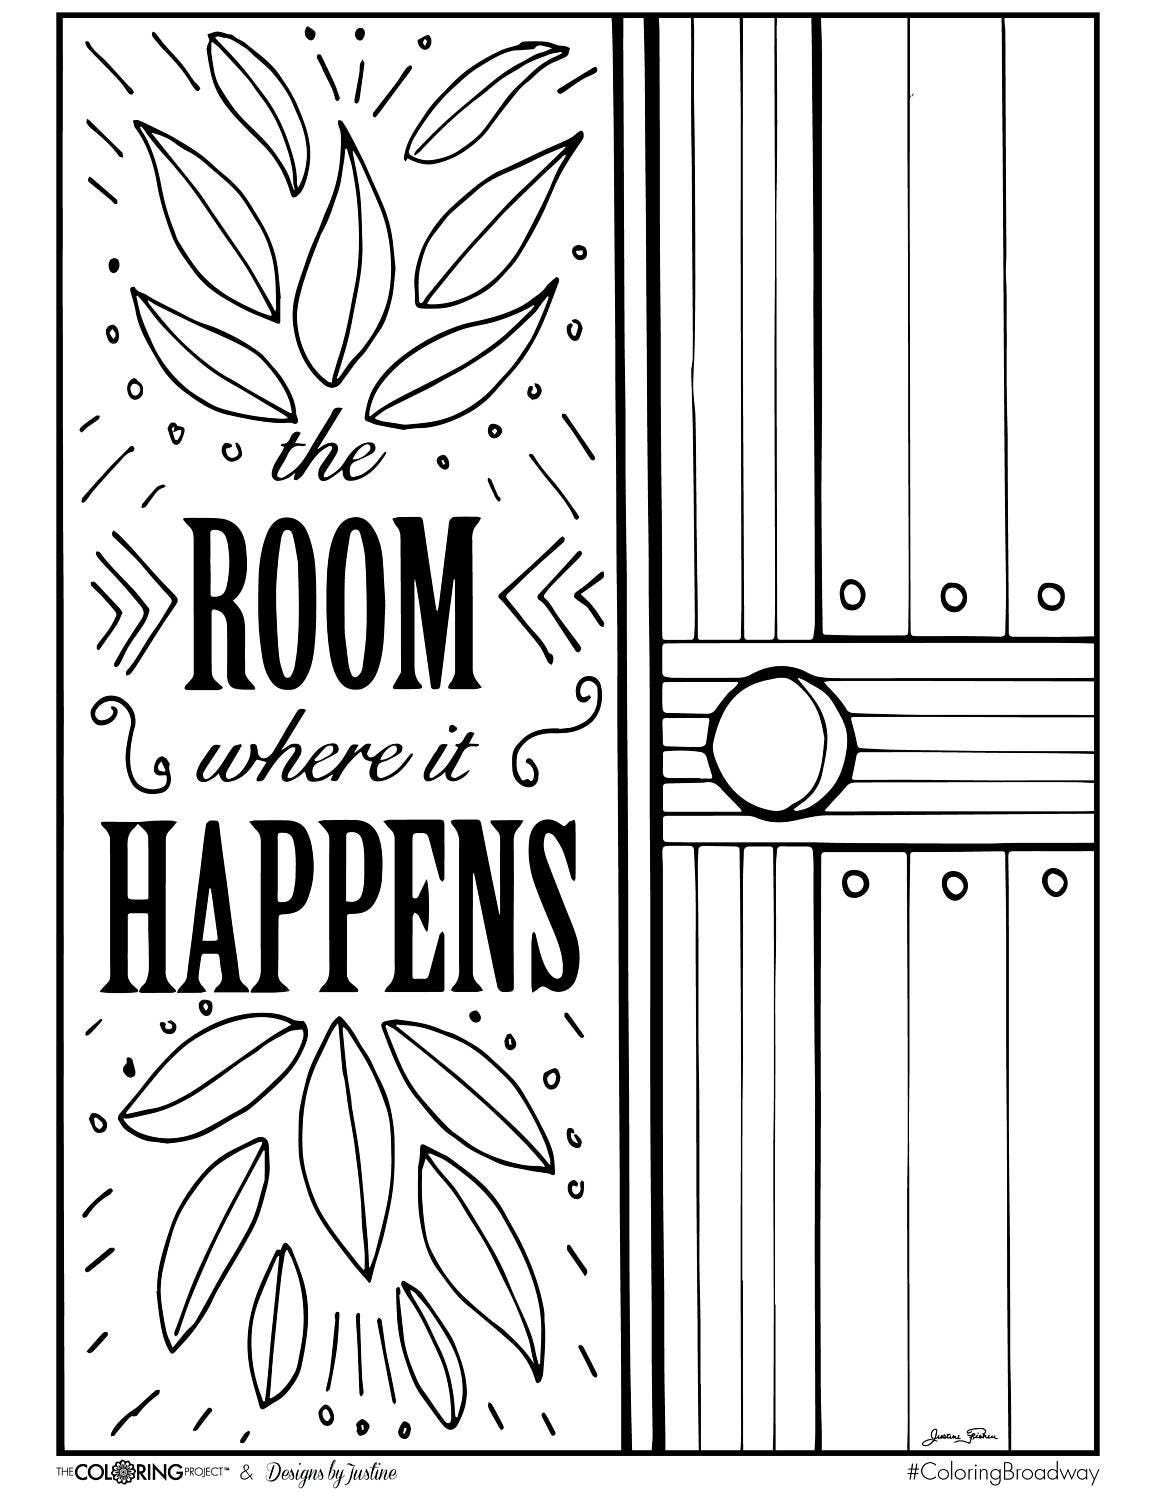 Coloring broadway hamilton the room where it happens for Hamilton coloring pages